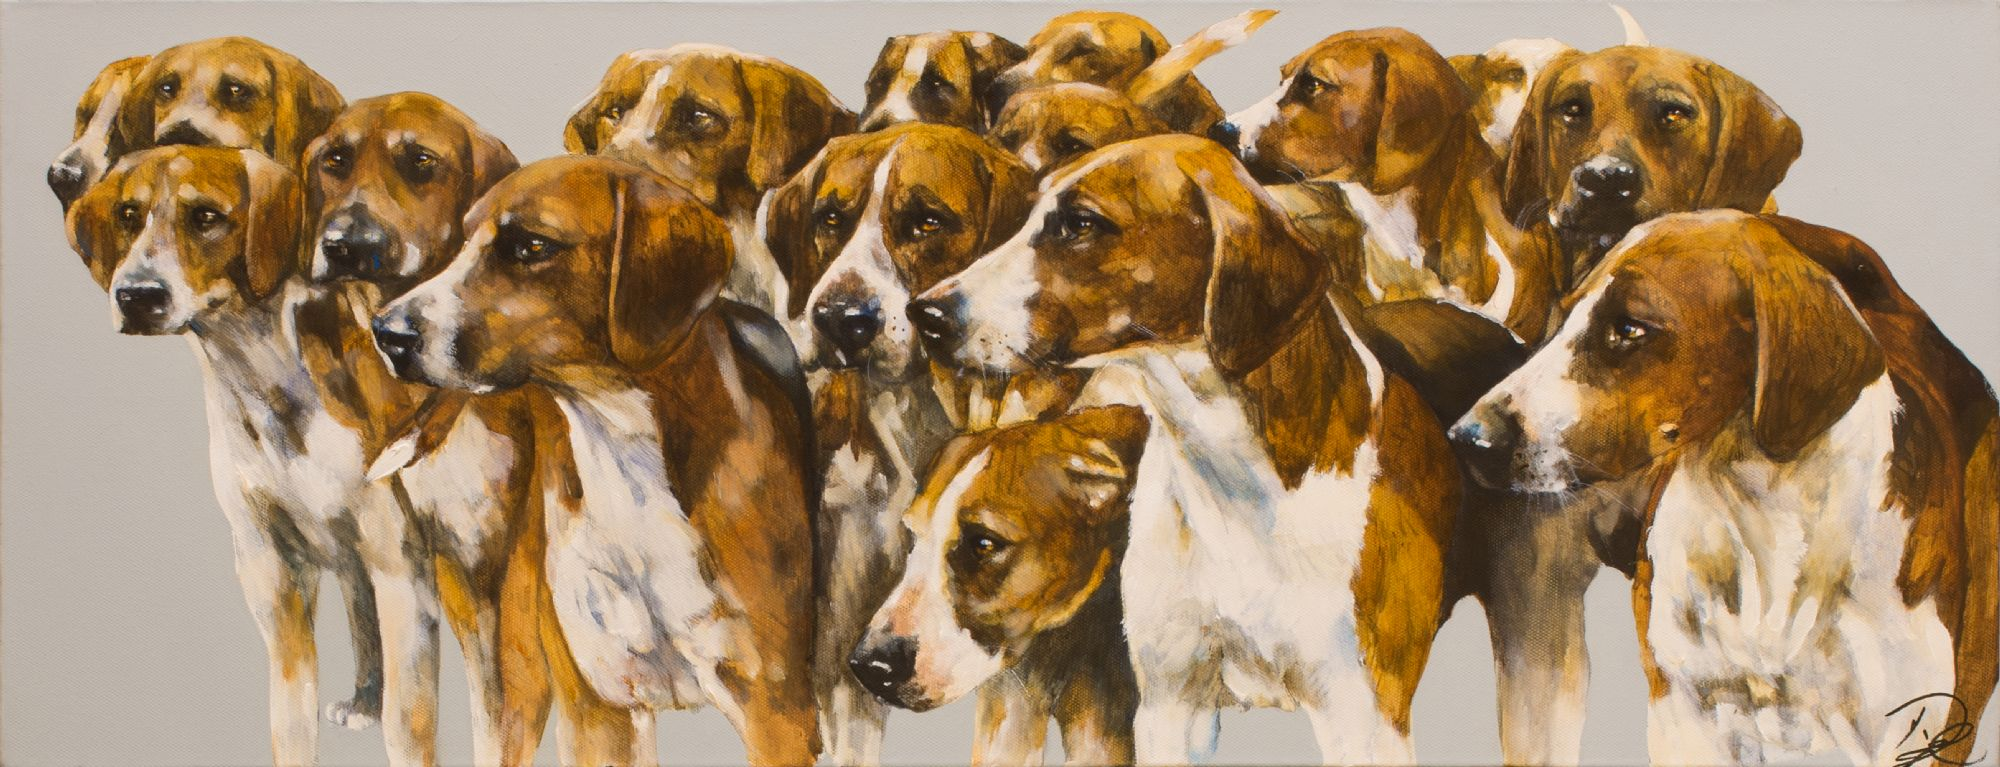 Paula Vize art dog English Foxhound